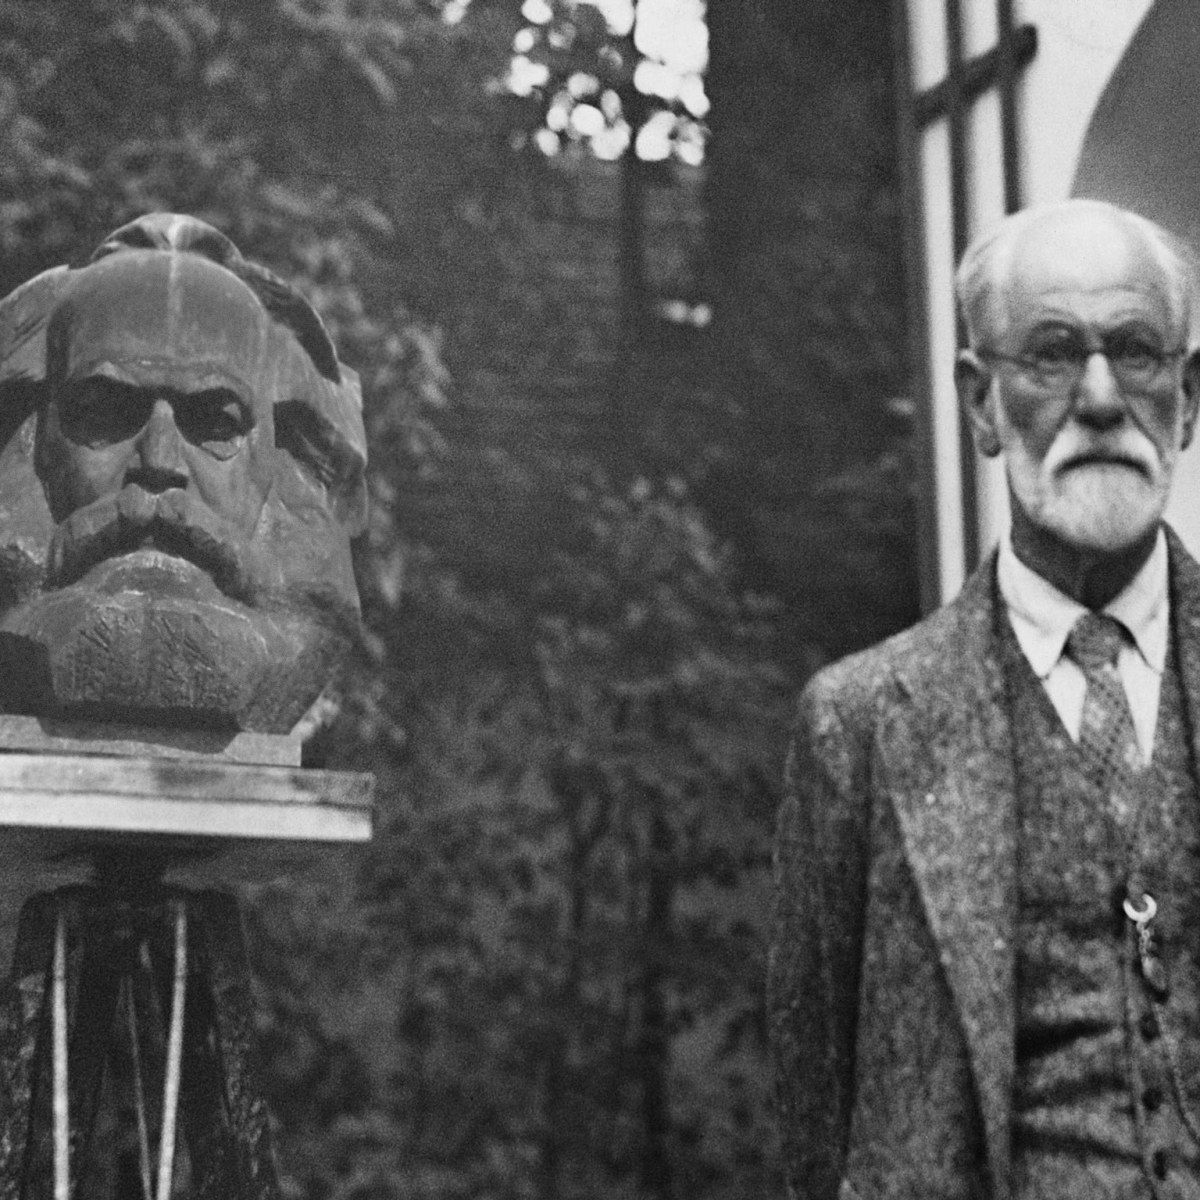 Early Marxist criticisms of Freudian psychoanalysis: Karl Korsch and Georg Lukács